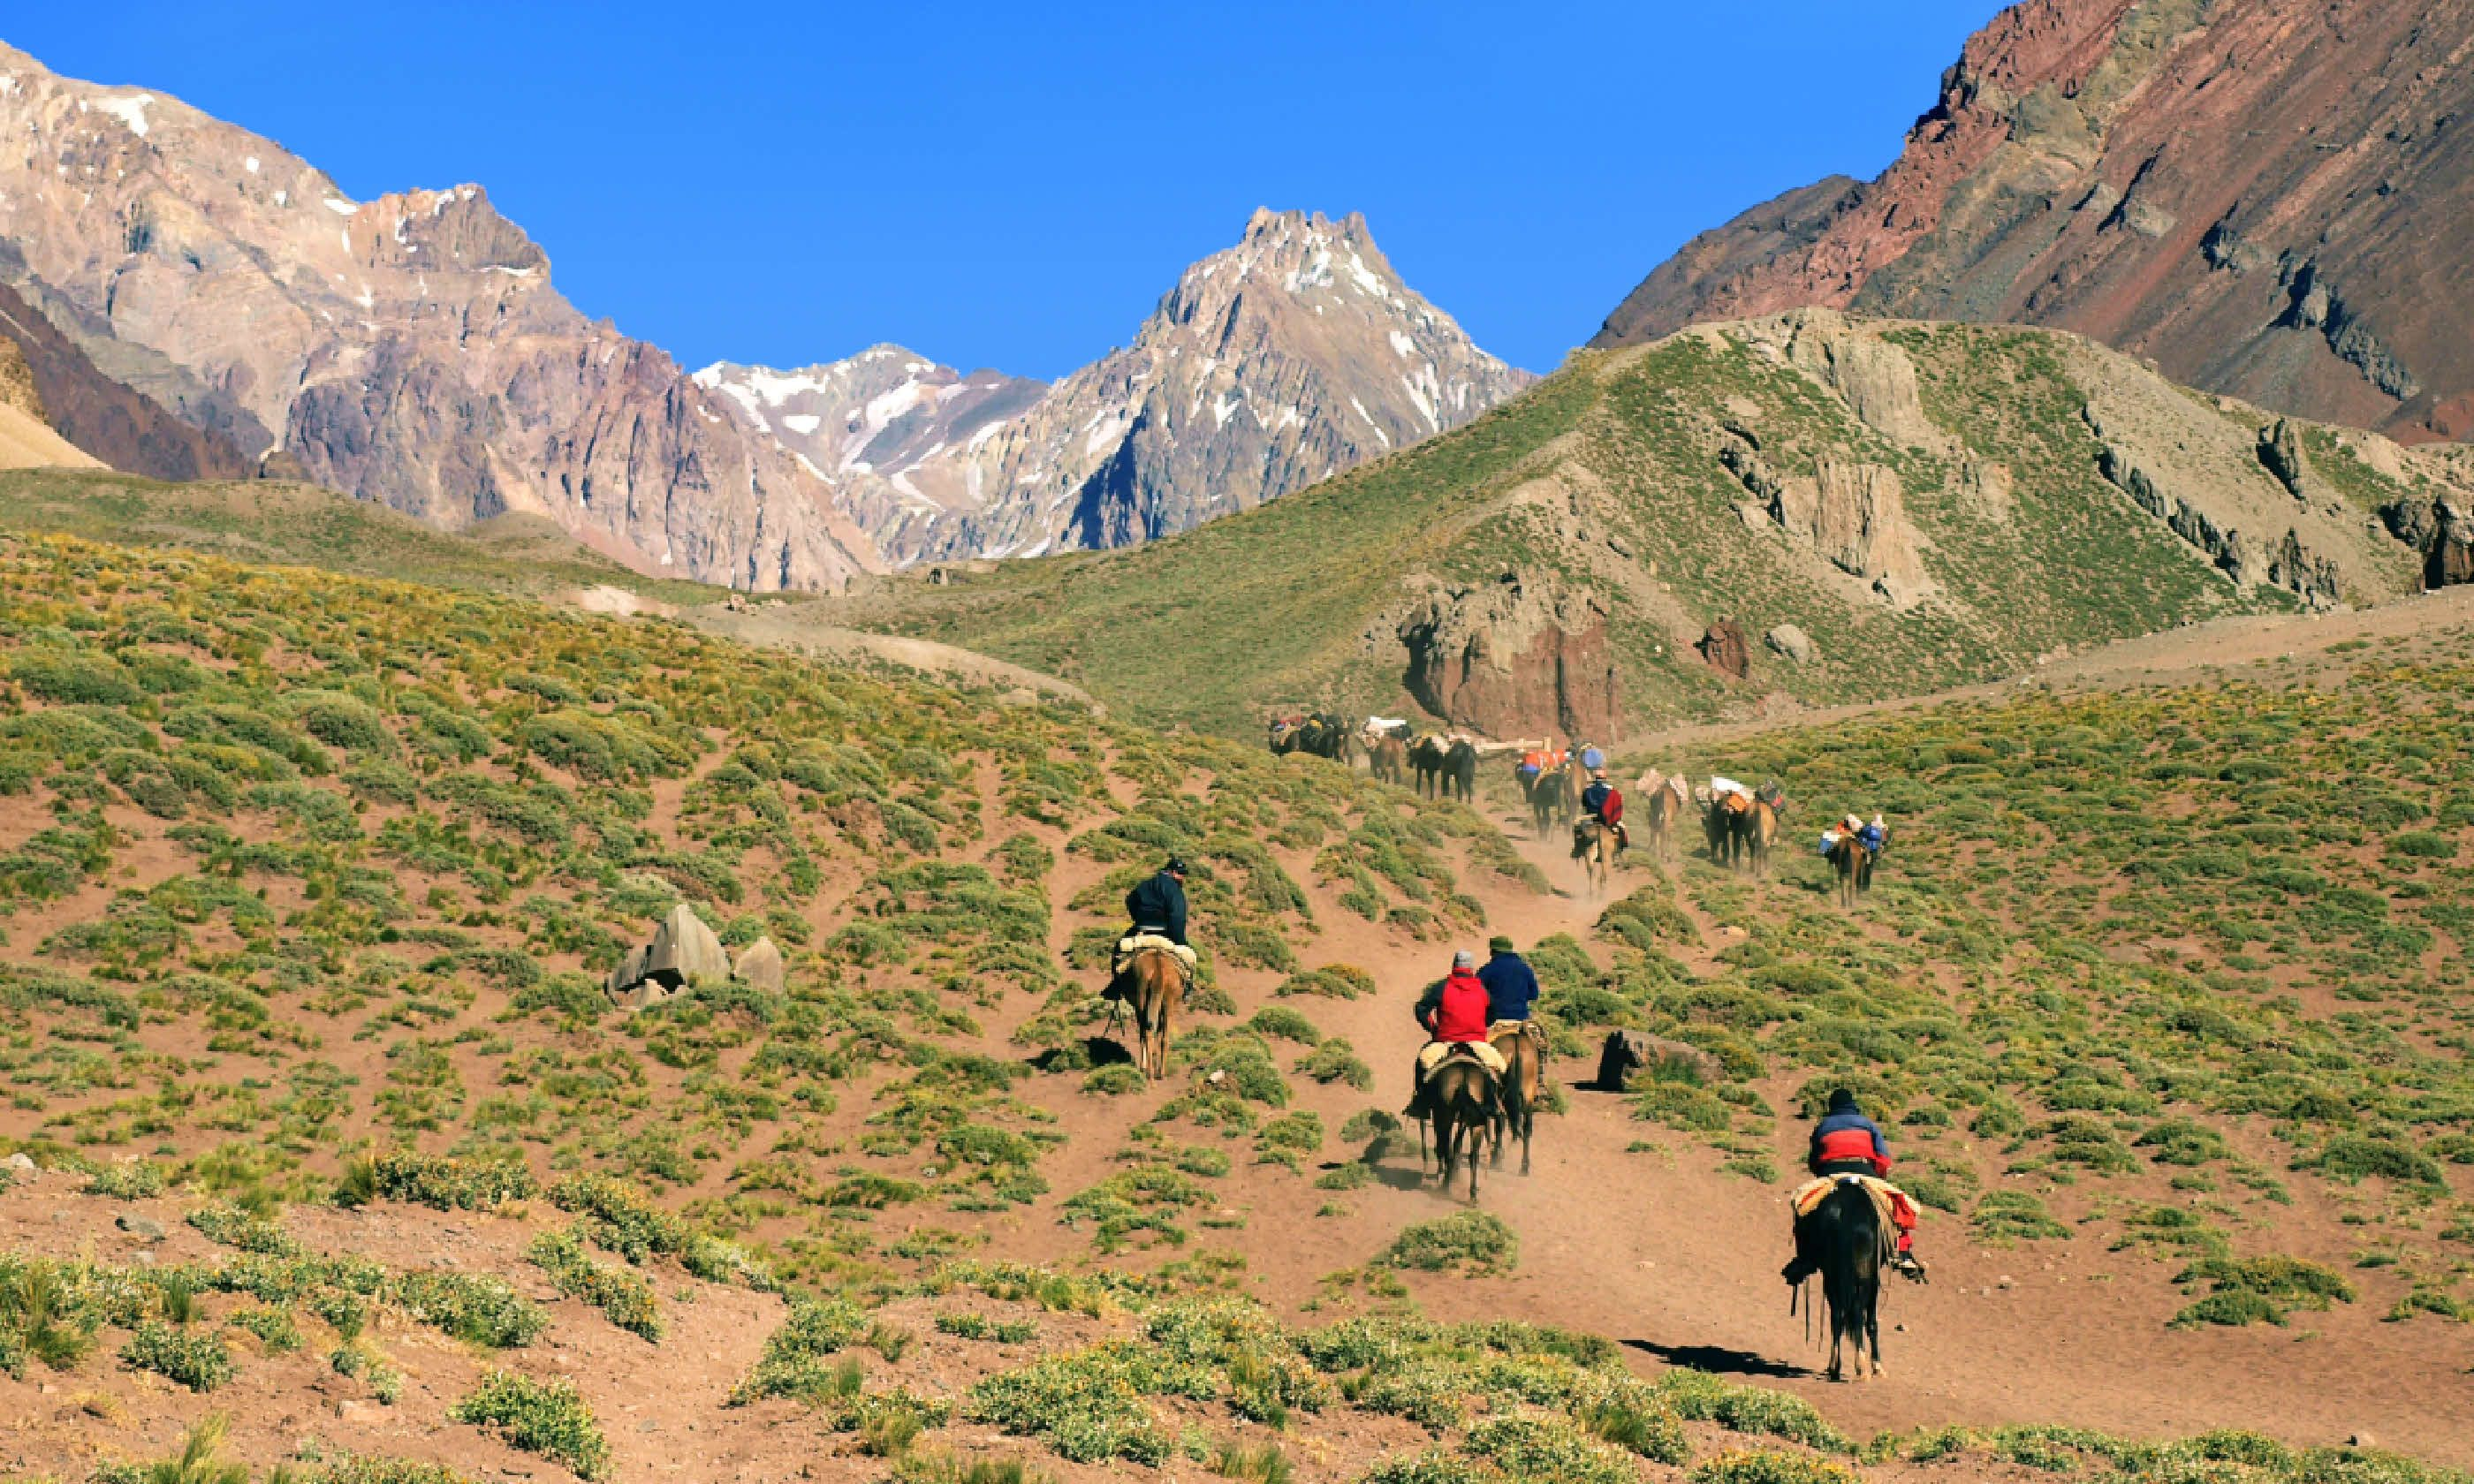 Horseriding in the Andes (Shutterstock)